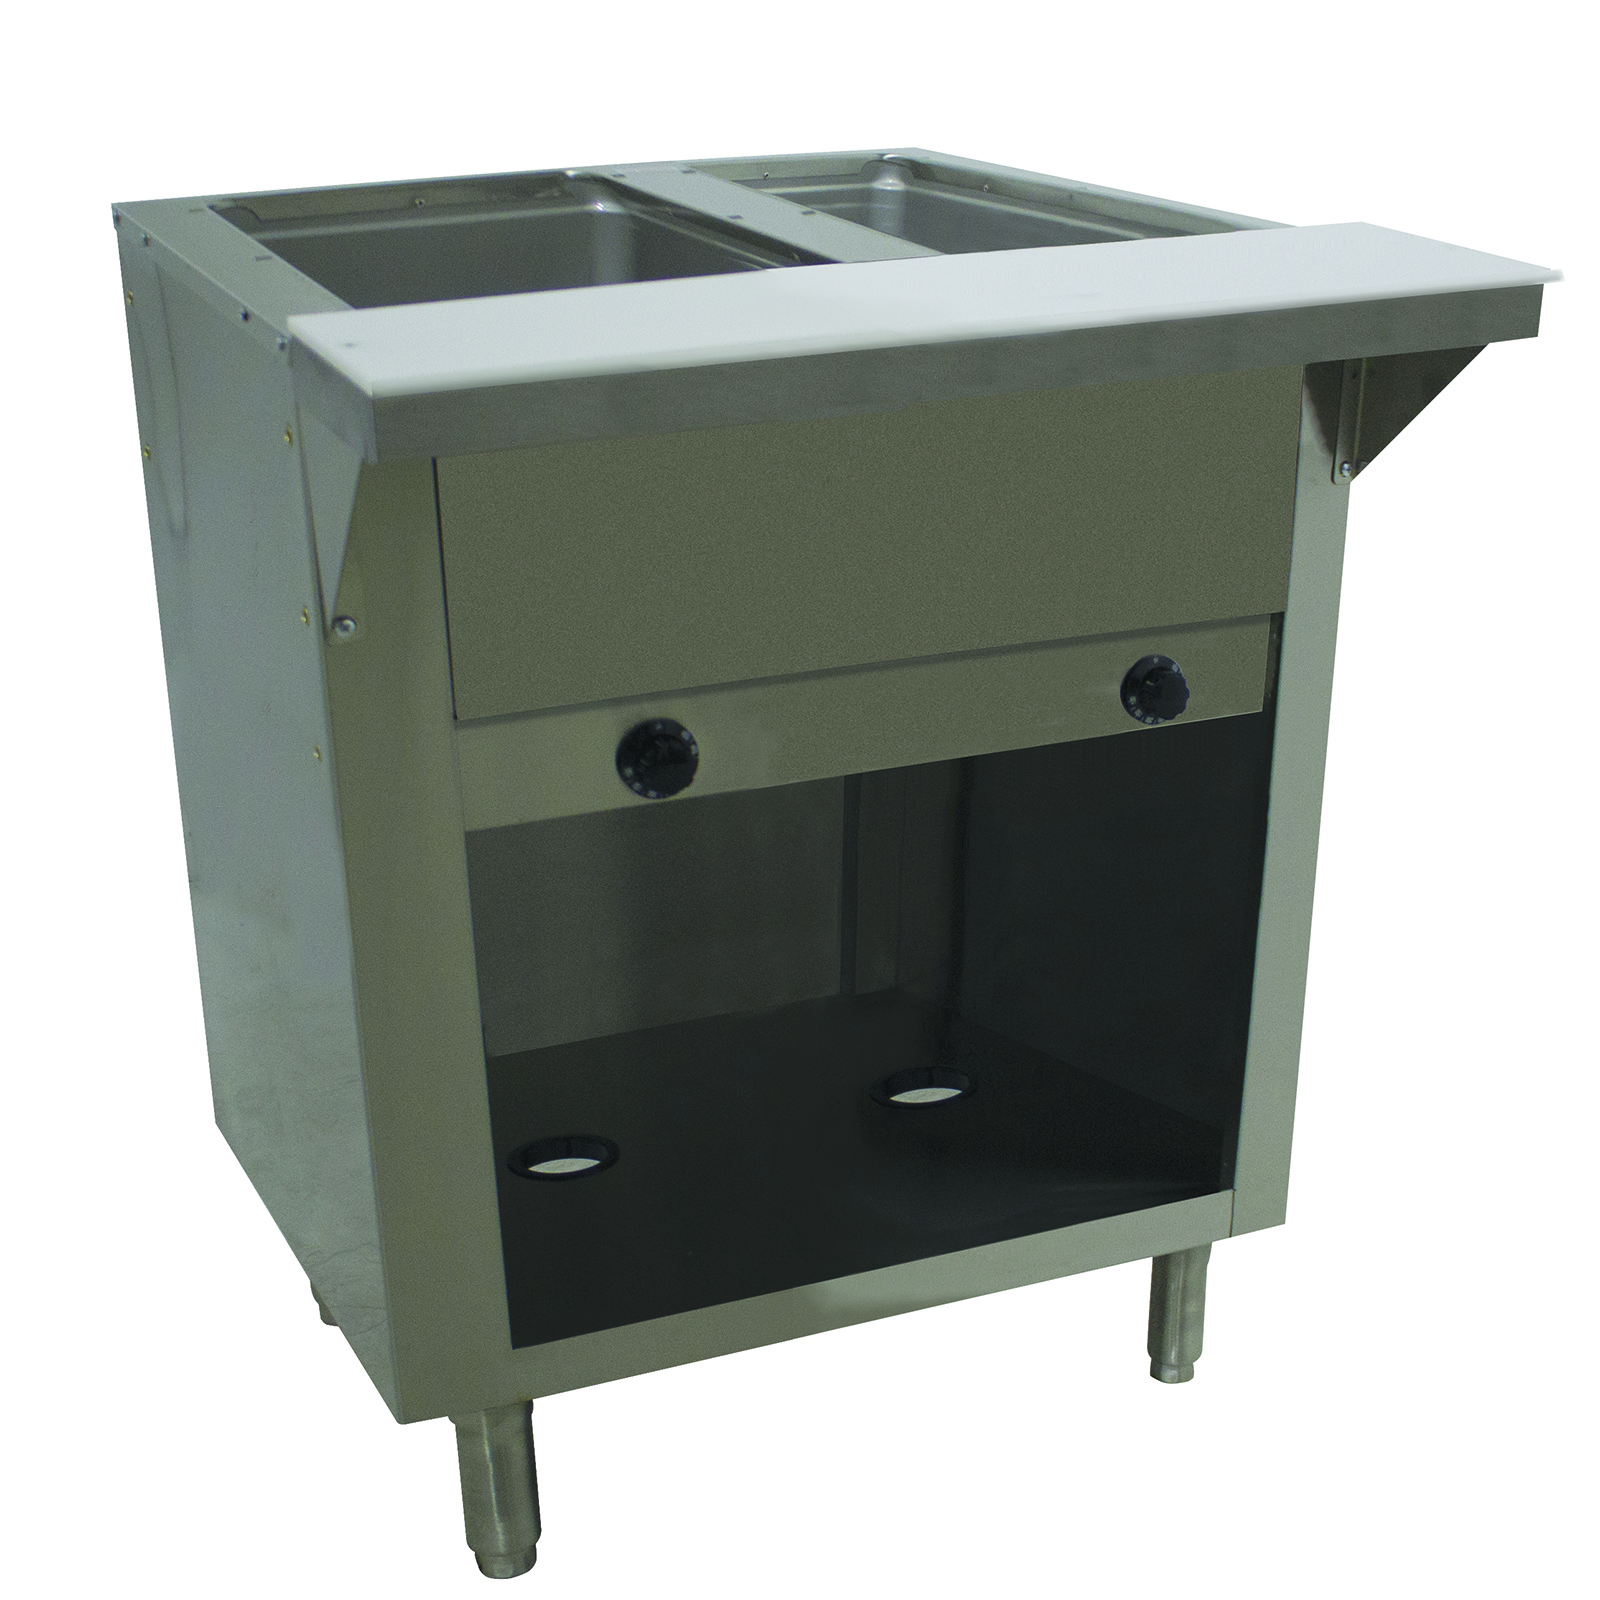 Advance Tabco HF-2G-LP-BS serving counter, hot food, gas